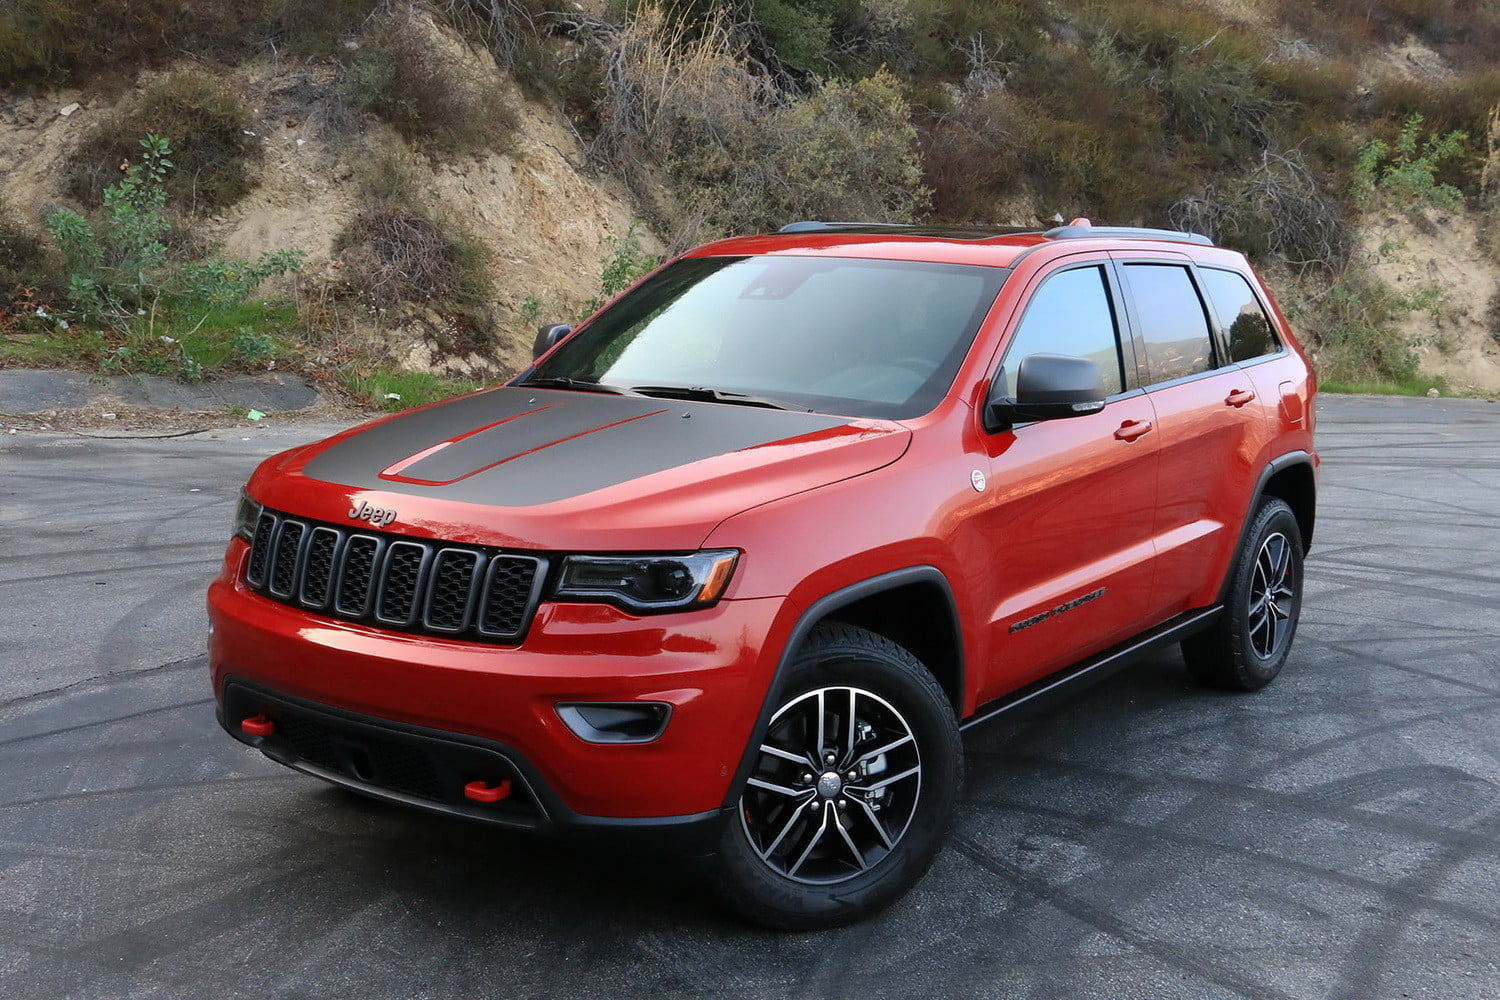 2019 Jeep Cherokee V 6 Awd Test It S Just Okay Review Car And